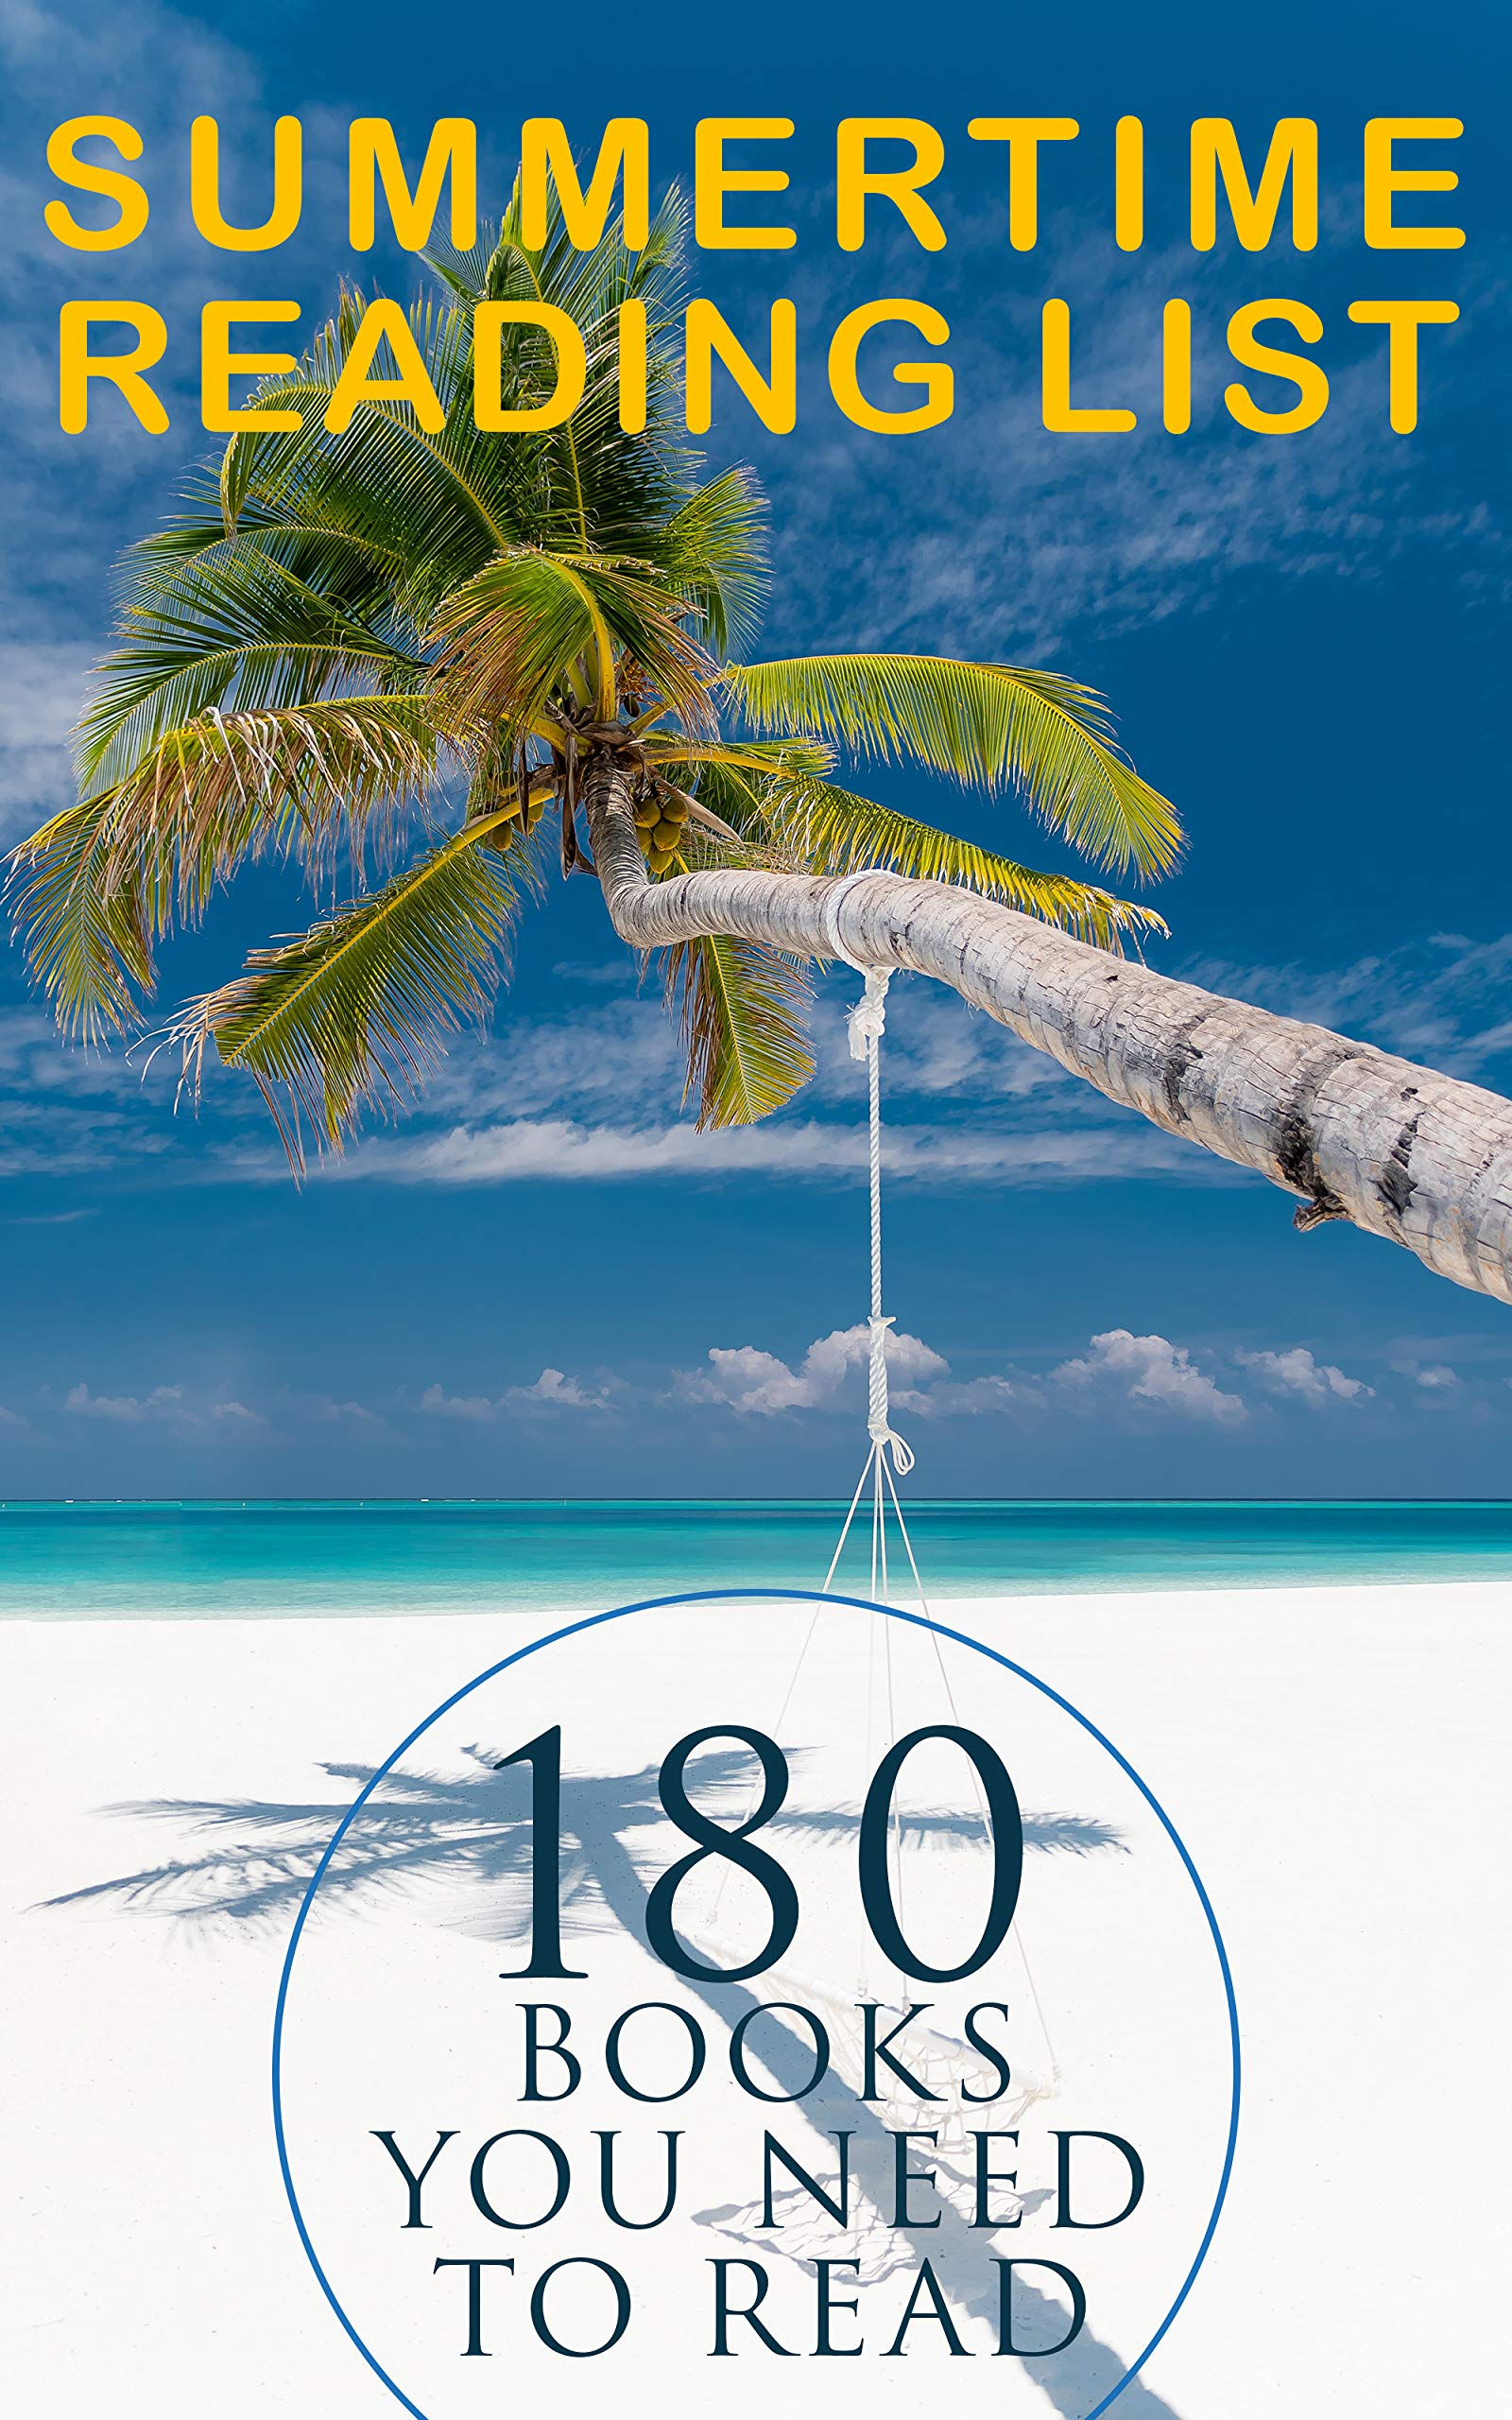 Summertime Reading List: 180 Books You Need to Read (Vol.I): Leaves of Grass, Siddhartha, Middlemarch, The Jungle, Macbeth, Moby-Dick, A Study in Scarlet, The Way We Live Now, Sister Carrie...